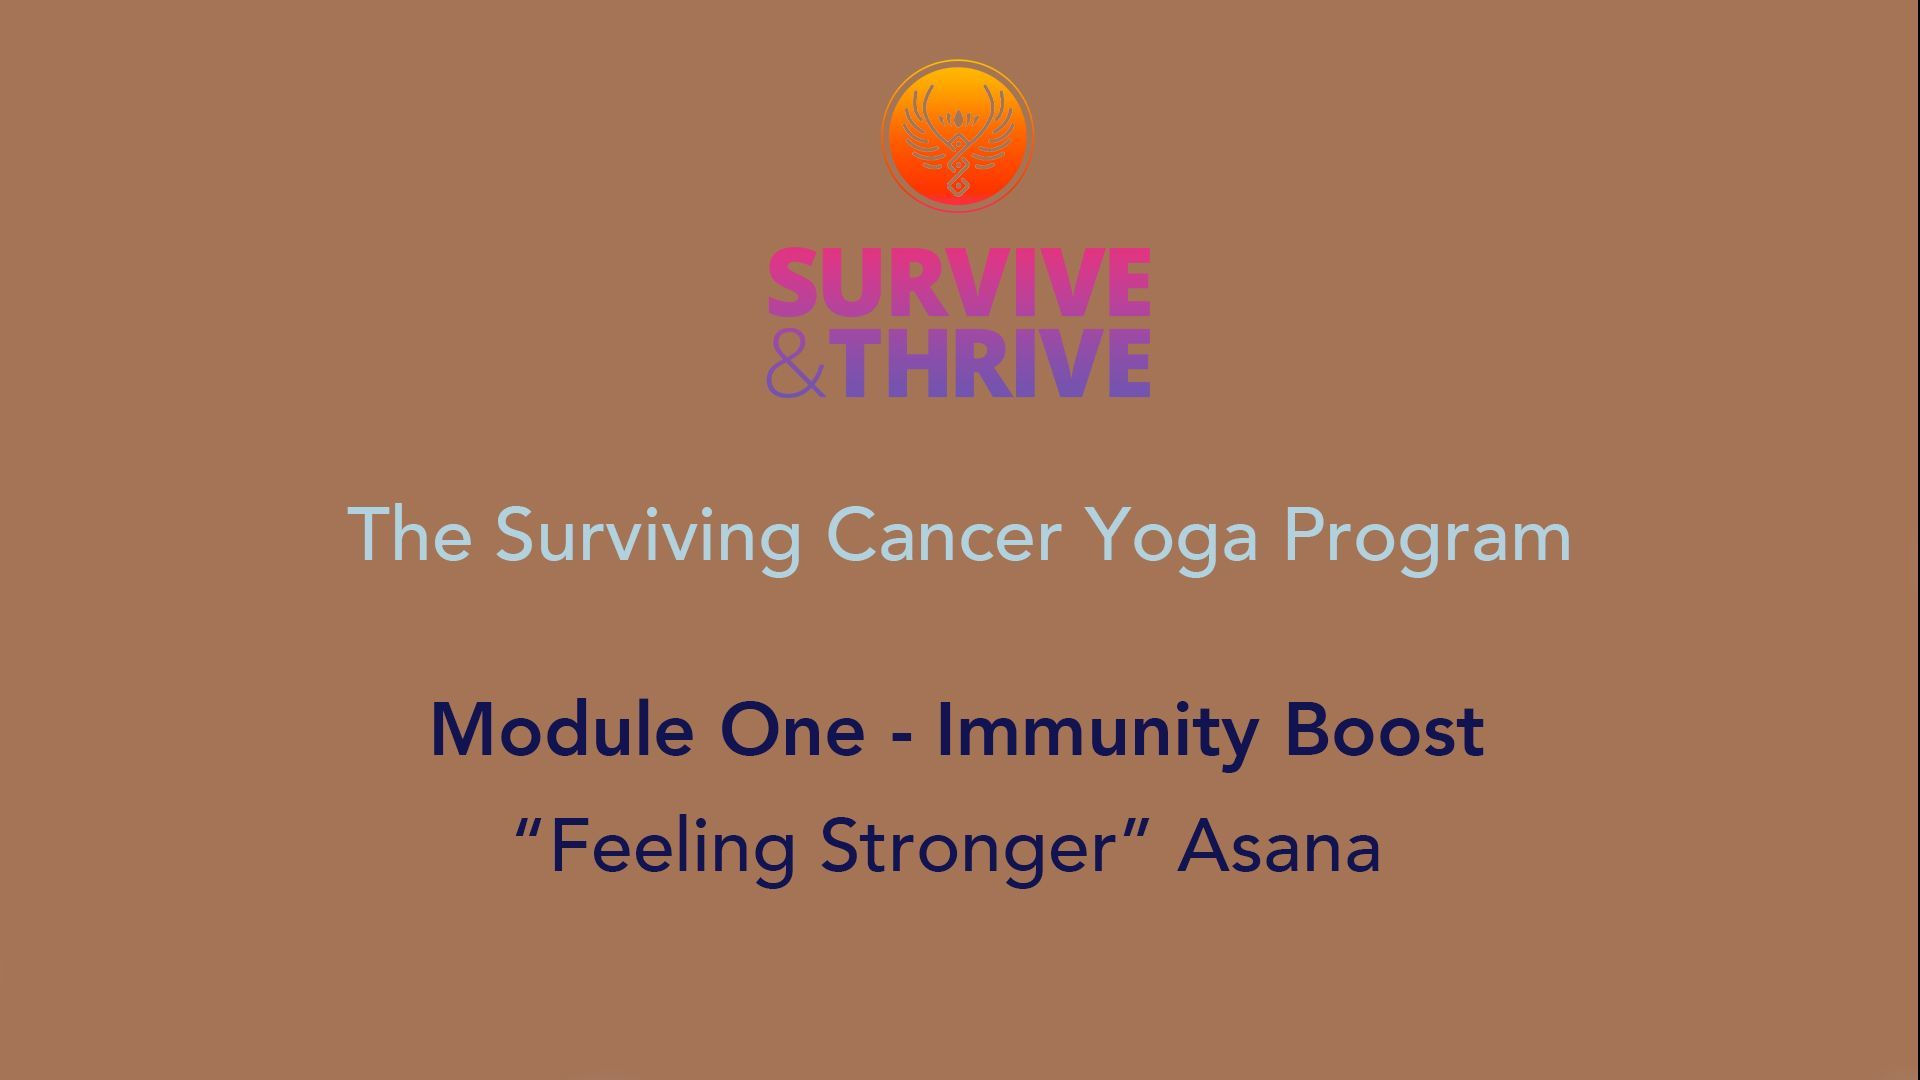 SURVIVE AND THRIVE | MODULE 1 - IMMUNITY BOOST | FEELING STRONGER ASANA